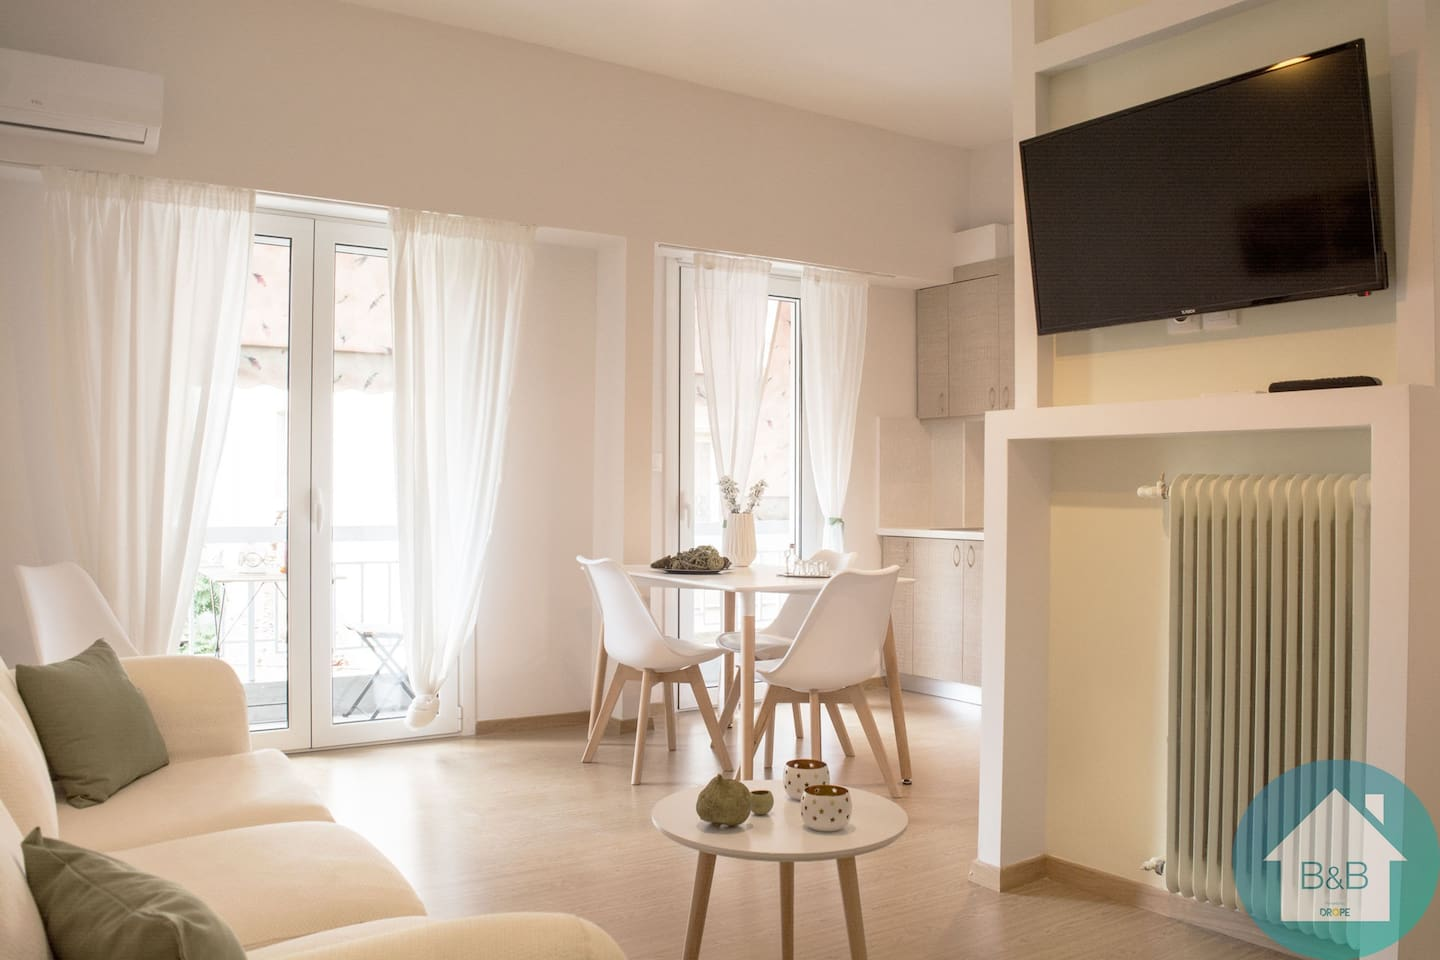 Entering the flat you find a big living room. Here you can find a sofa-bed and a couch which are perfect for rest and planning of your adventures.Additionally, the living room has a dining table to enjoy your meals and an access to the rear balcony.